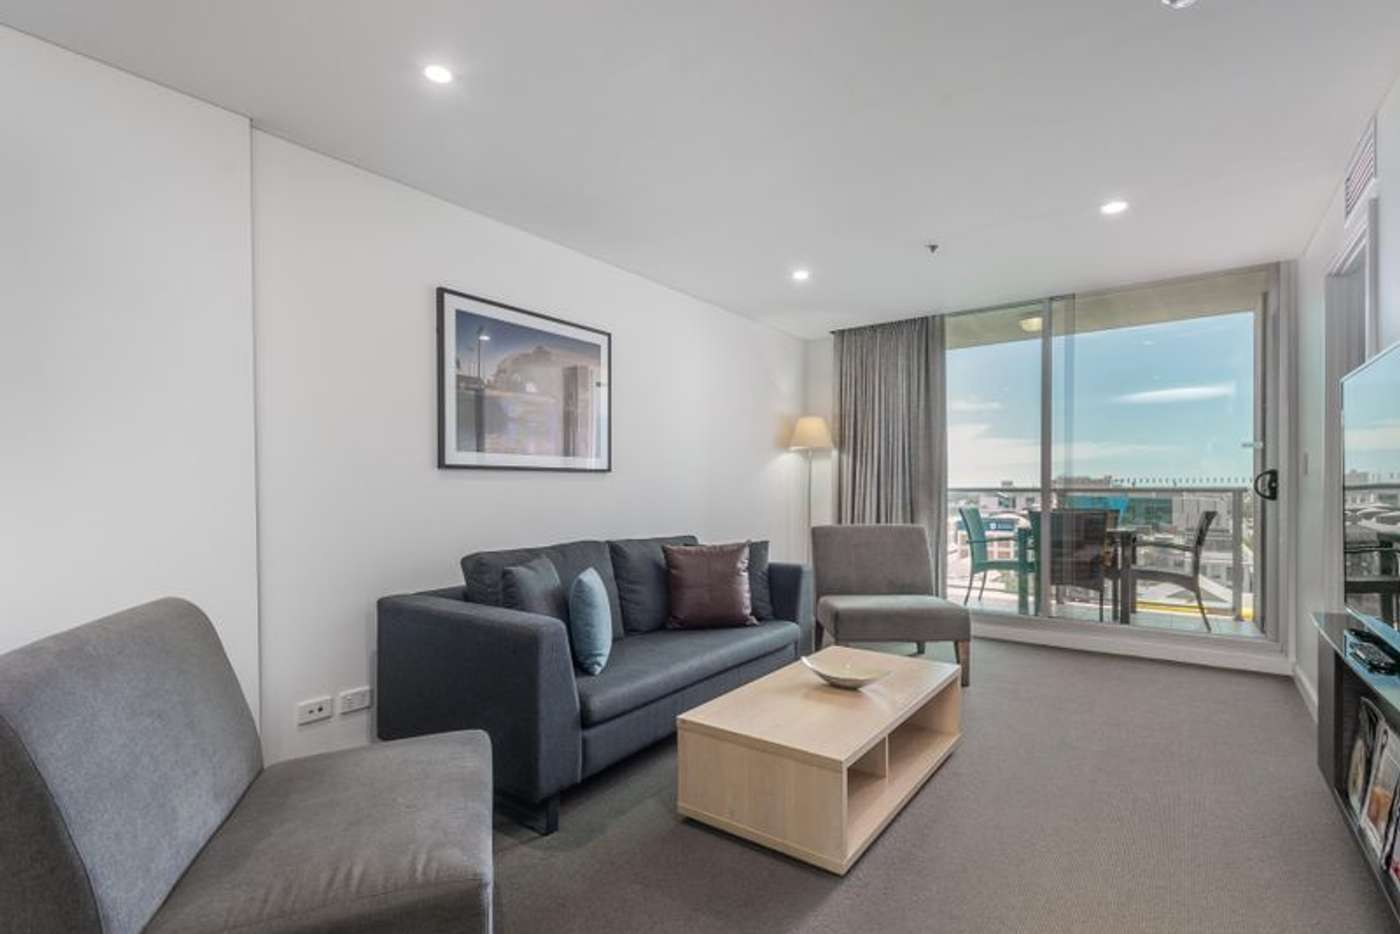 Fifth view of Homely apartment listing, 1115/96 North Terrace, Adelaide SA 5000